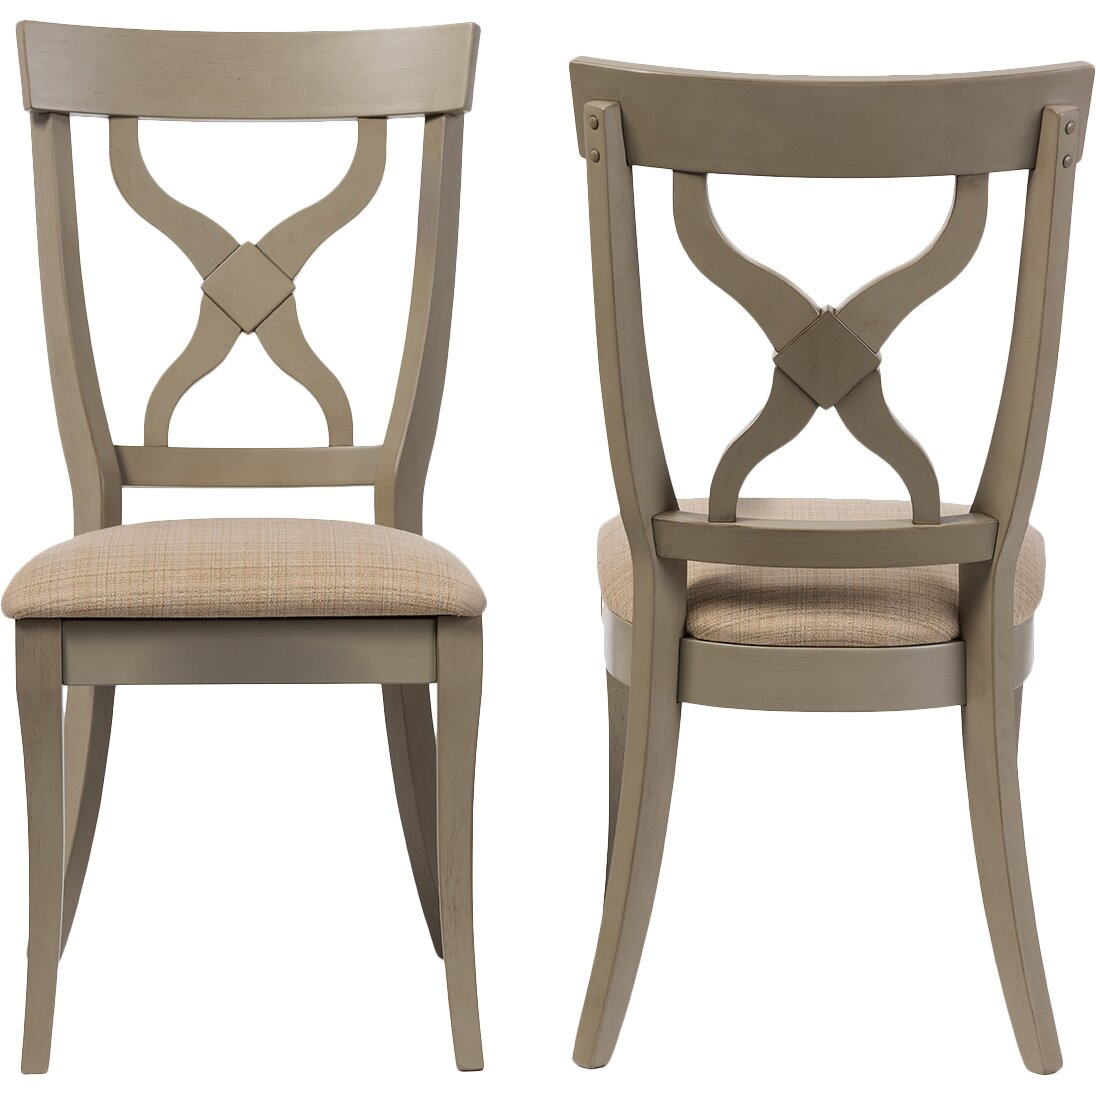 Wholesale Dining Room Chairs: Wholesale Interiors Baxton Studio Brandon Side Chair